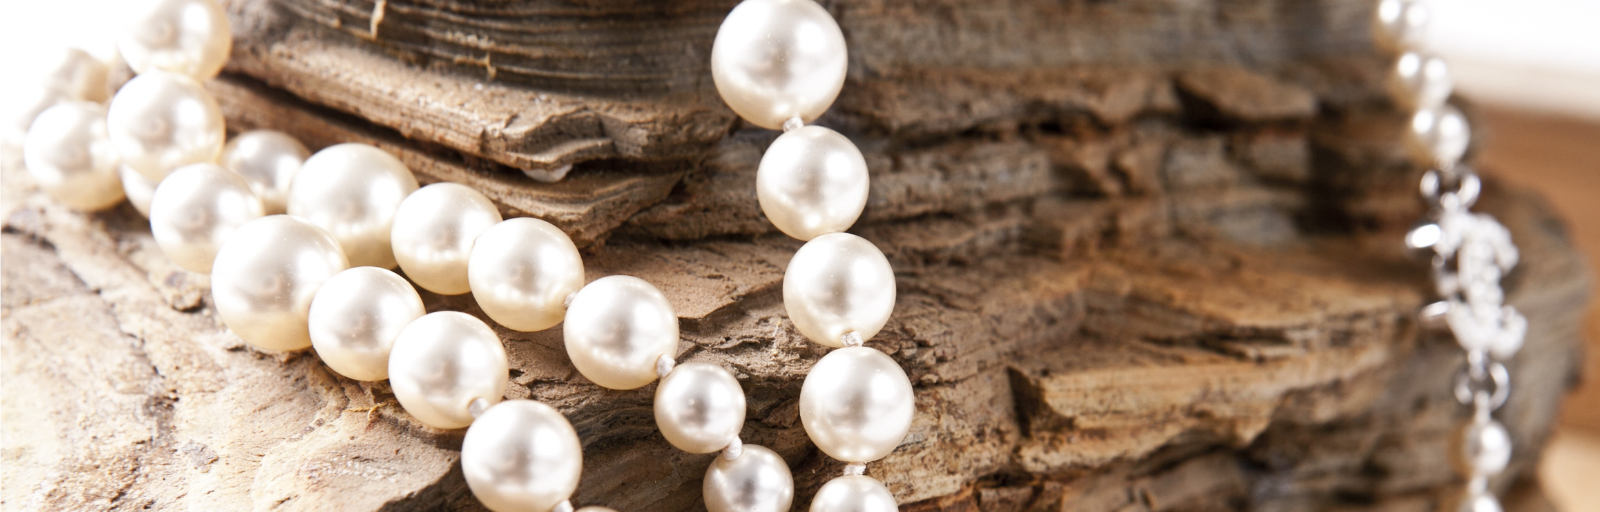 Pearl Necklace | 31 Most Popular Fashion Jewelry Trends For All Seasons